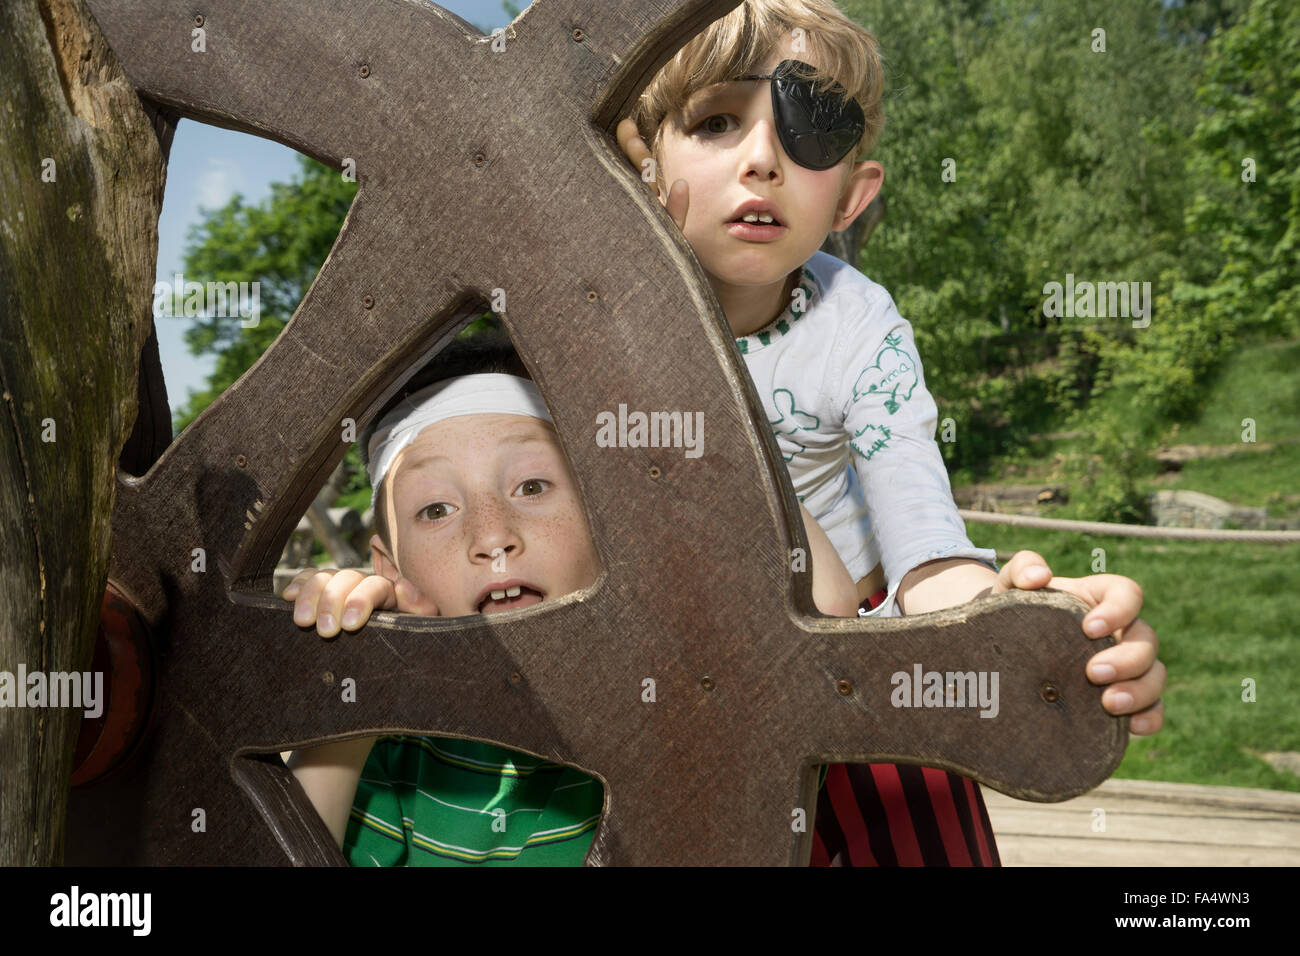 Two boys peeking from rudder of a pirate ship in adventure playground, Bavaria, Germany - Stock Image